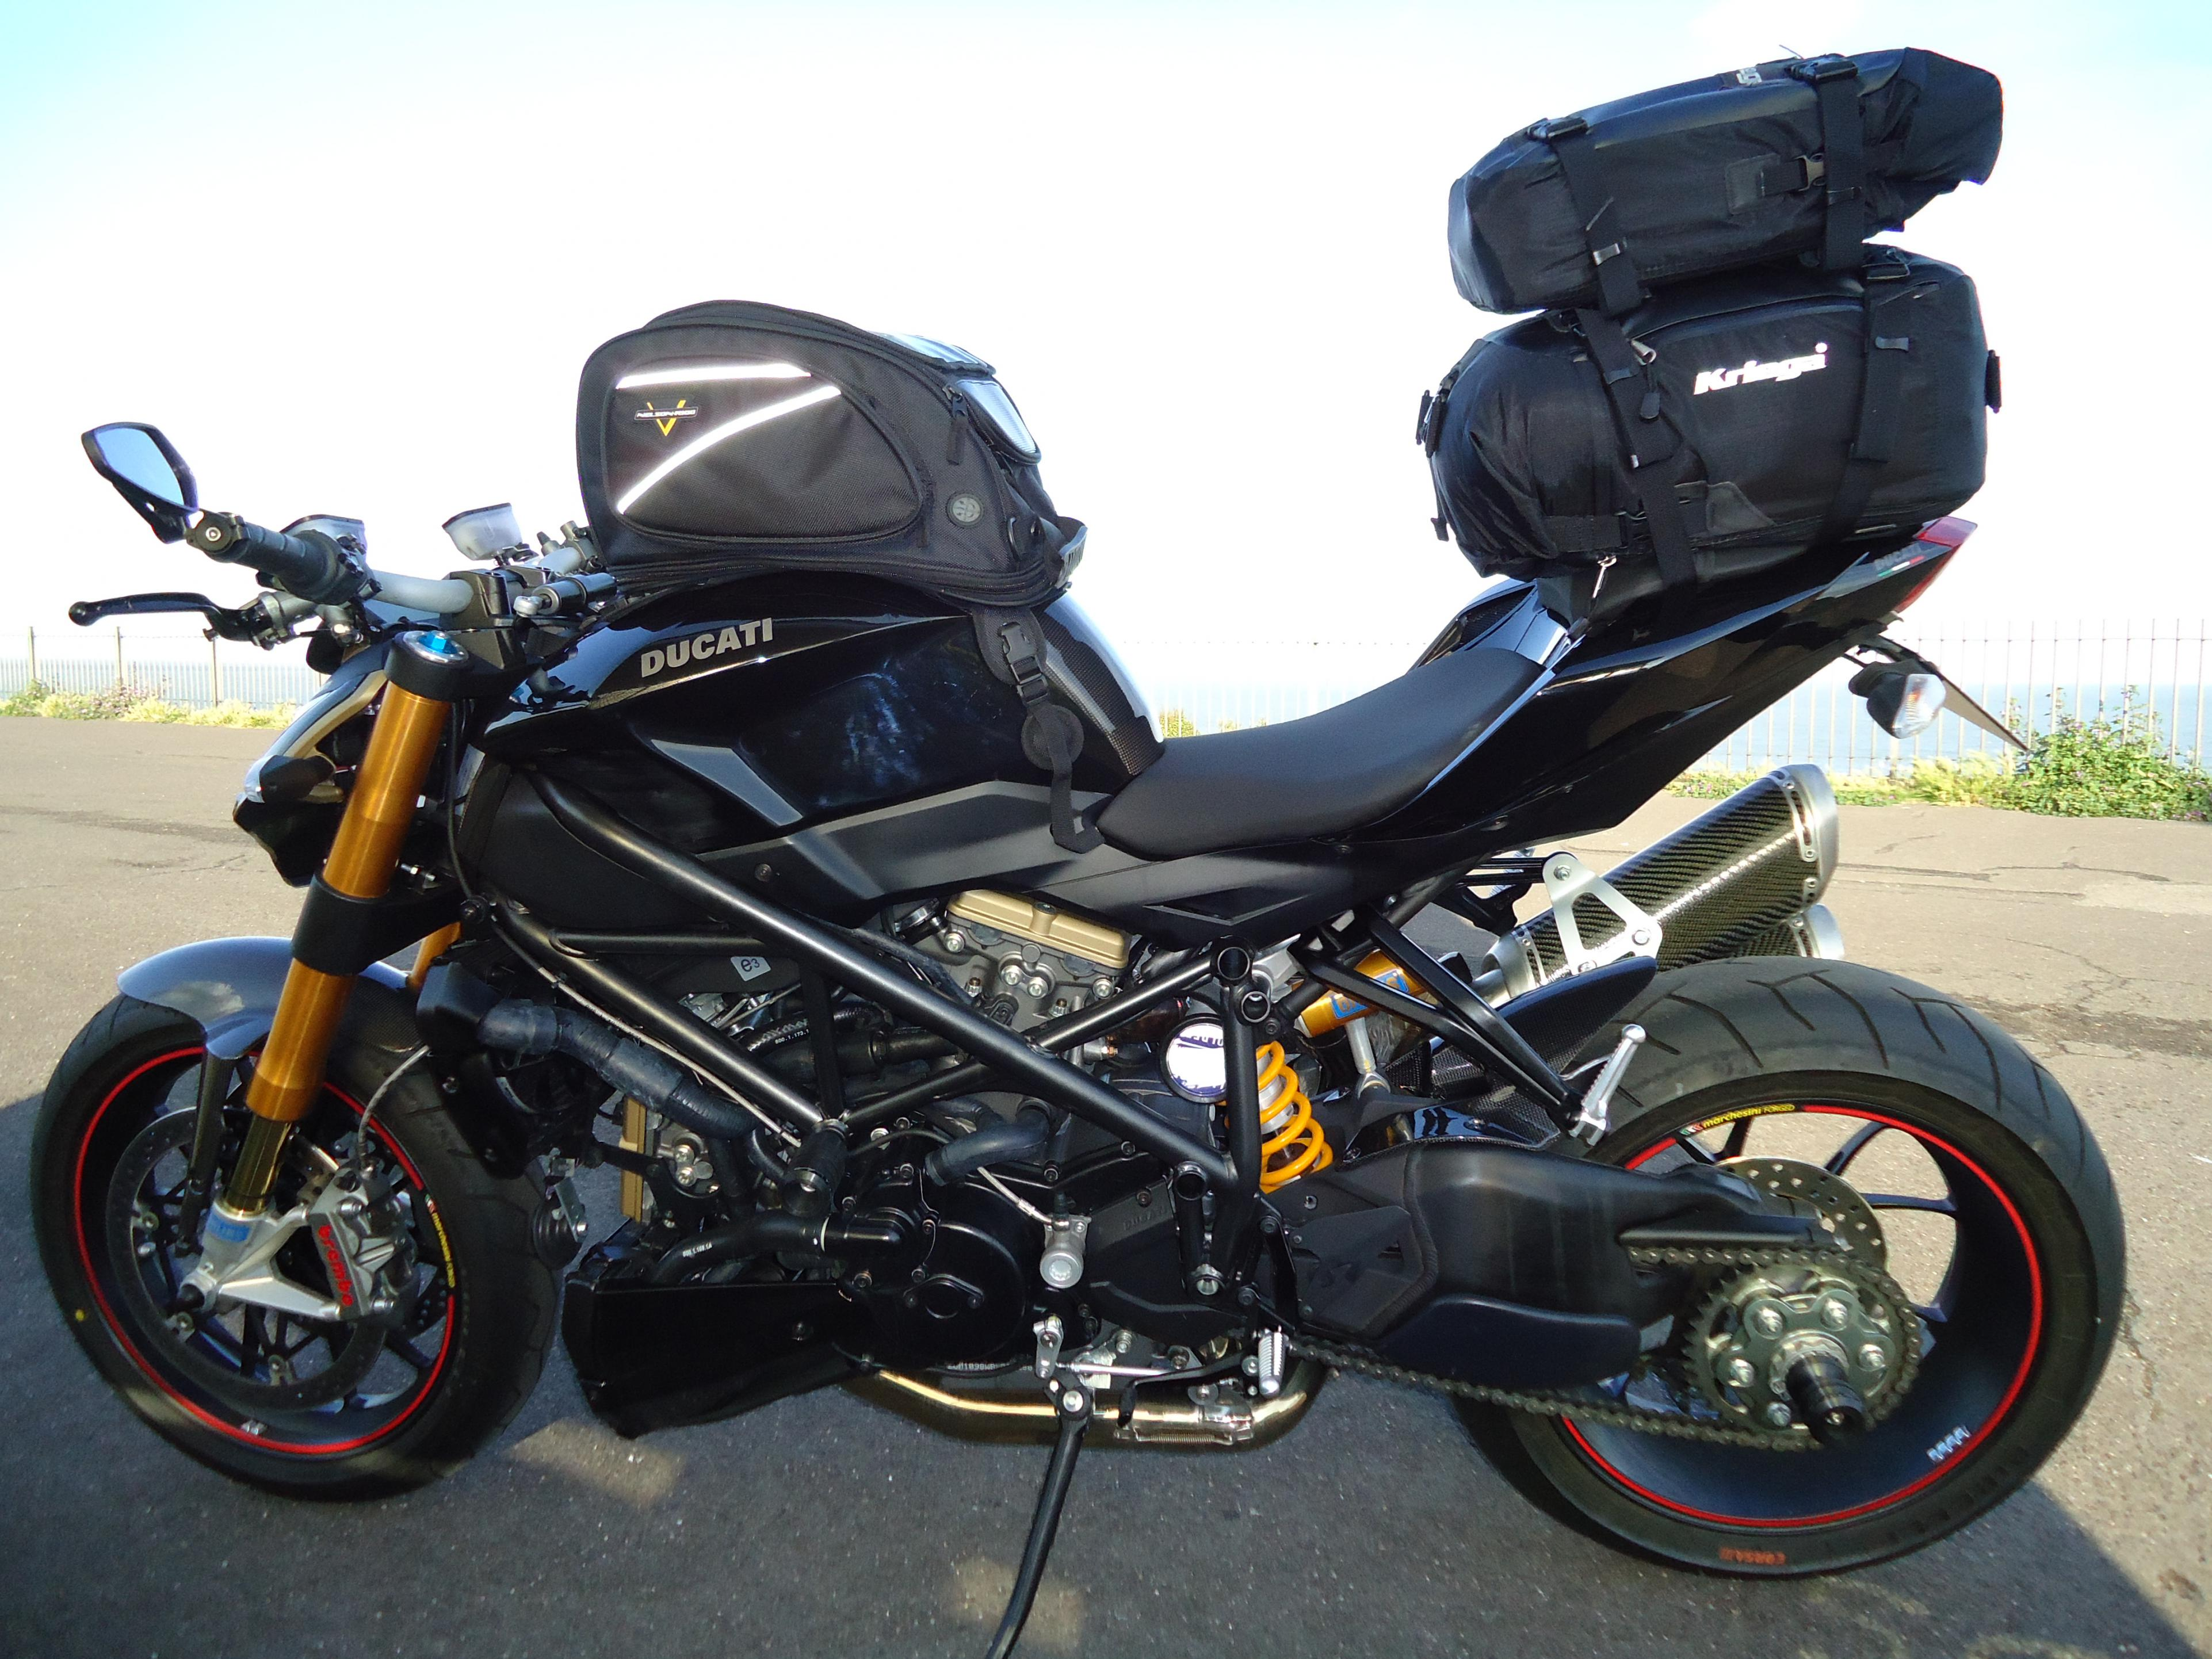 Street Fighter Motorcycle >> Streetfight tank/tail bags queery - Ducati.ms - The ...